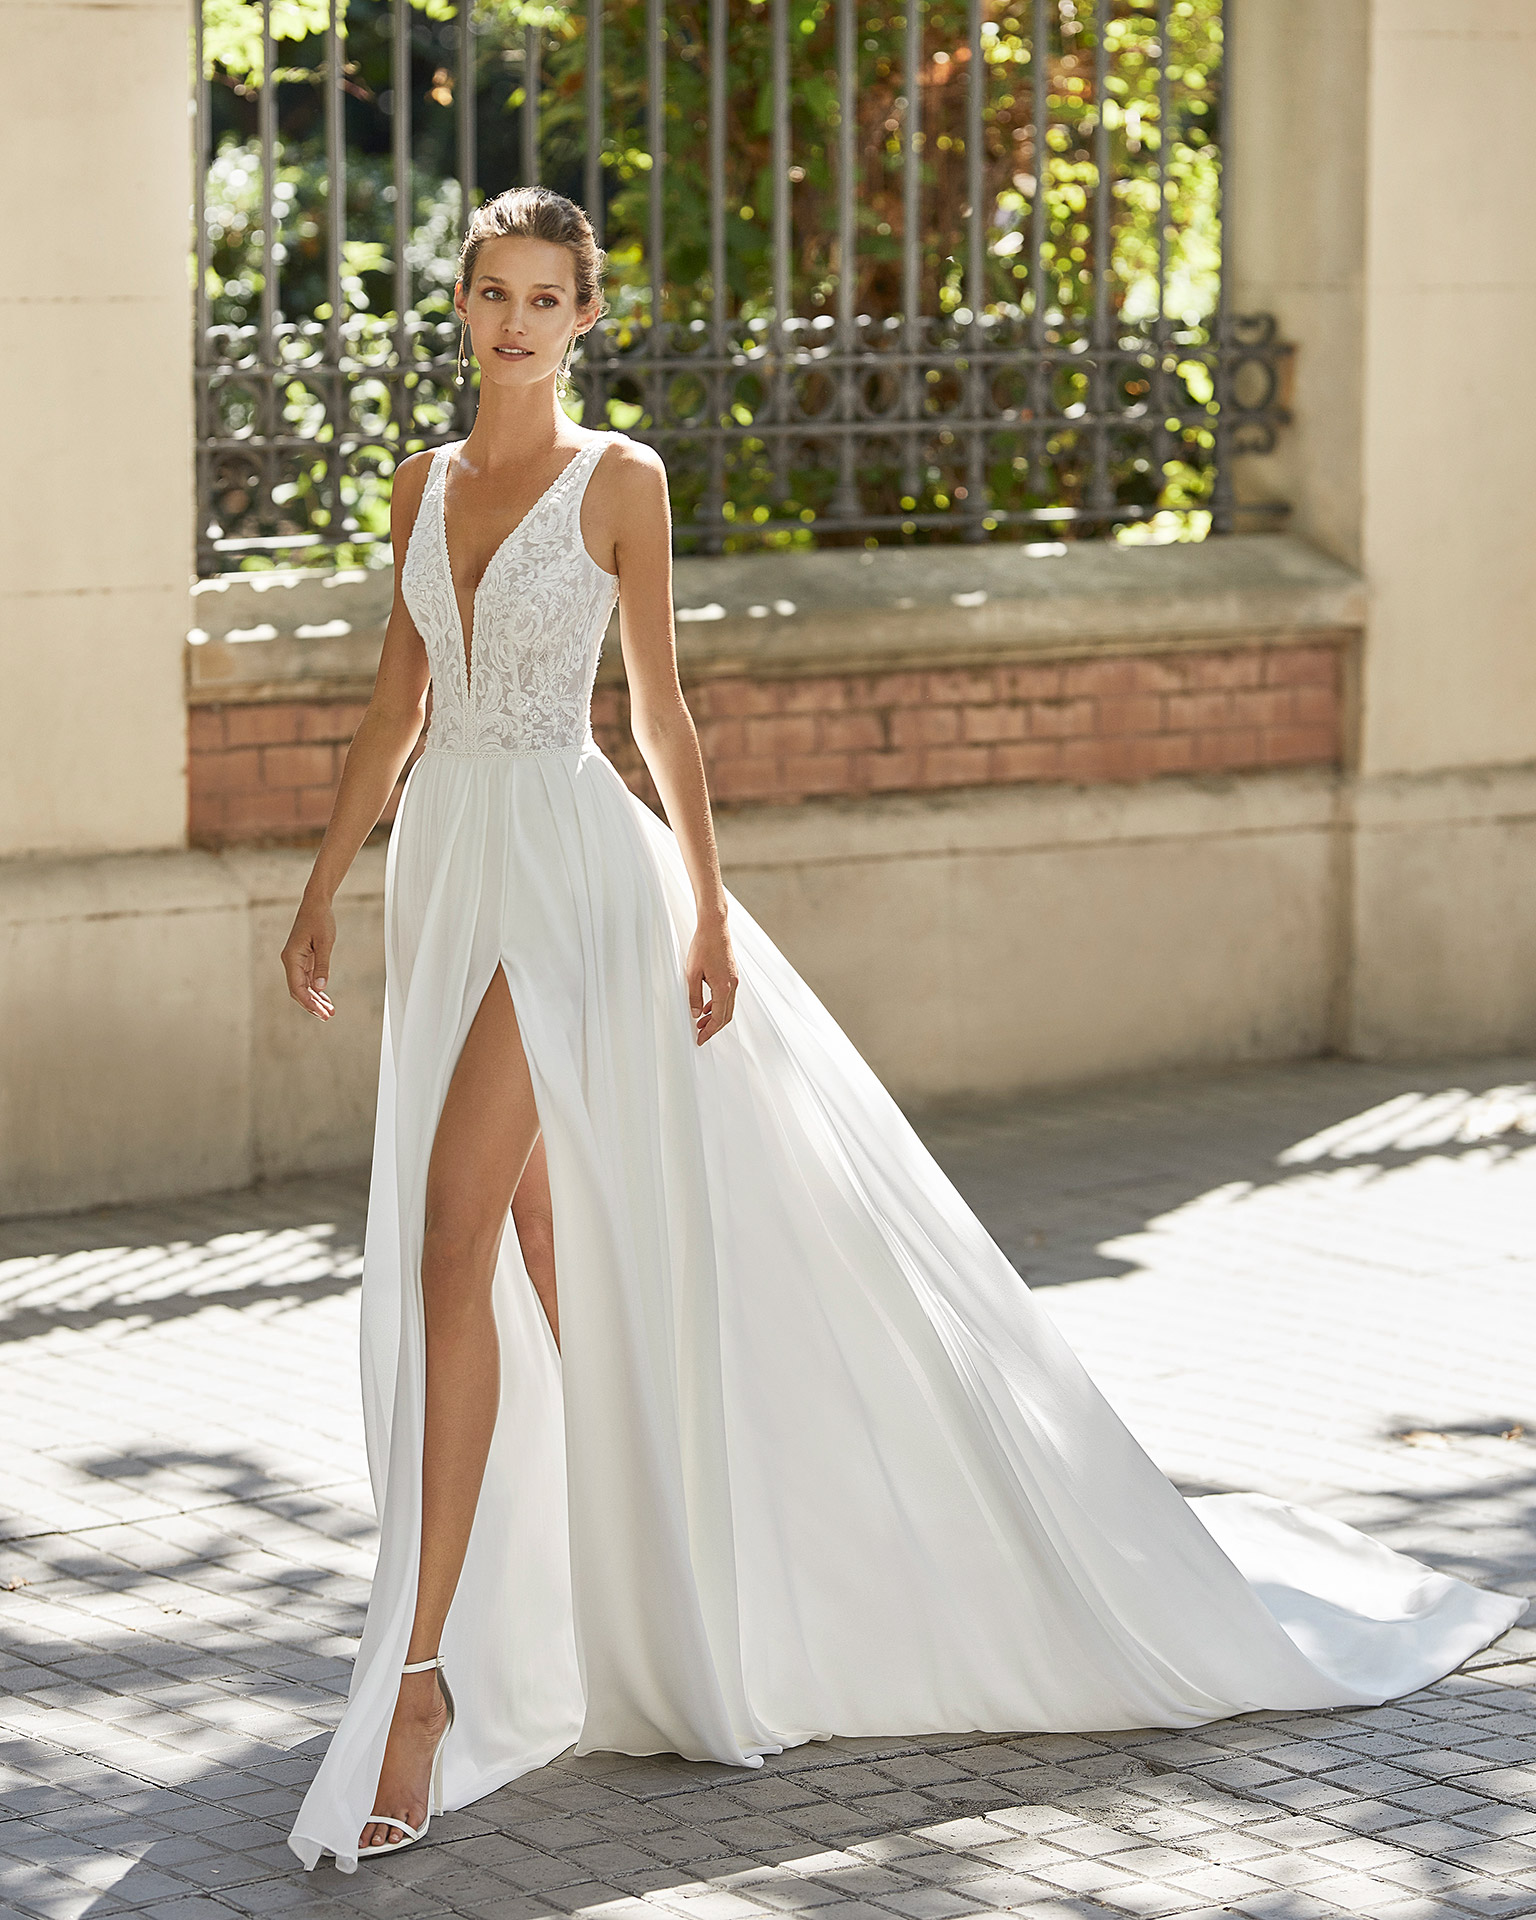 Lightweight wedding dress in georgette and beaded lace. Deep-plunge neckline and V-back. 2022  Collection.